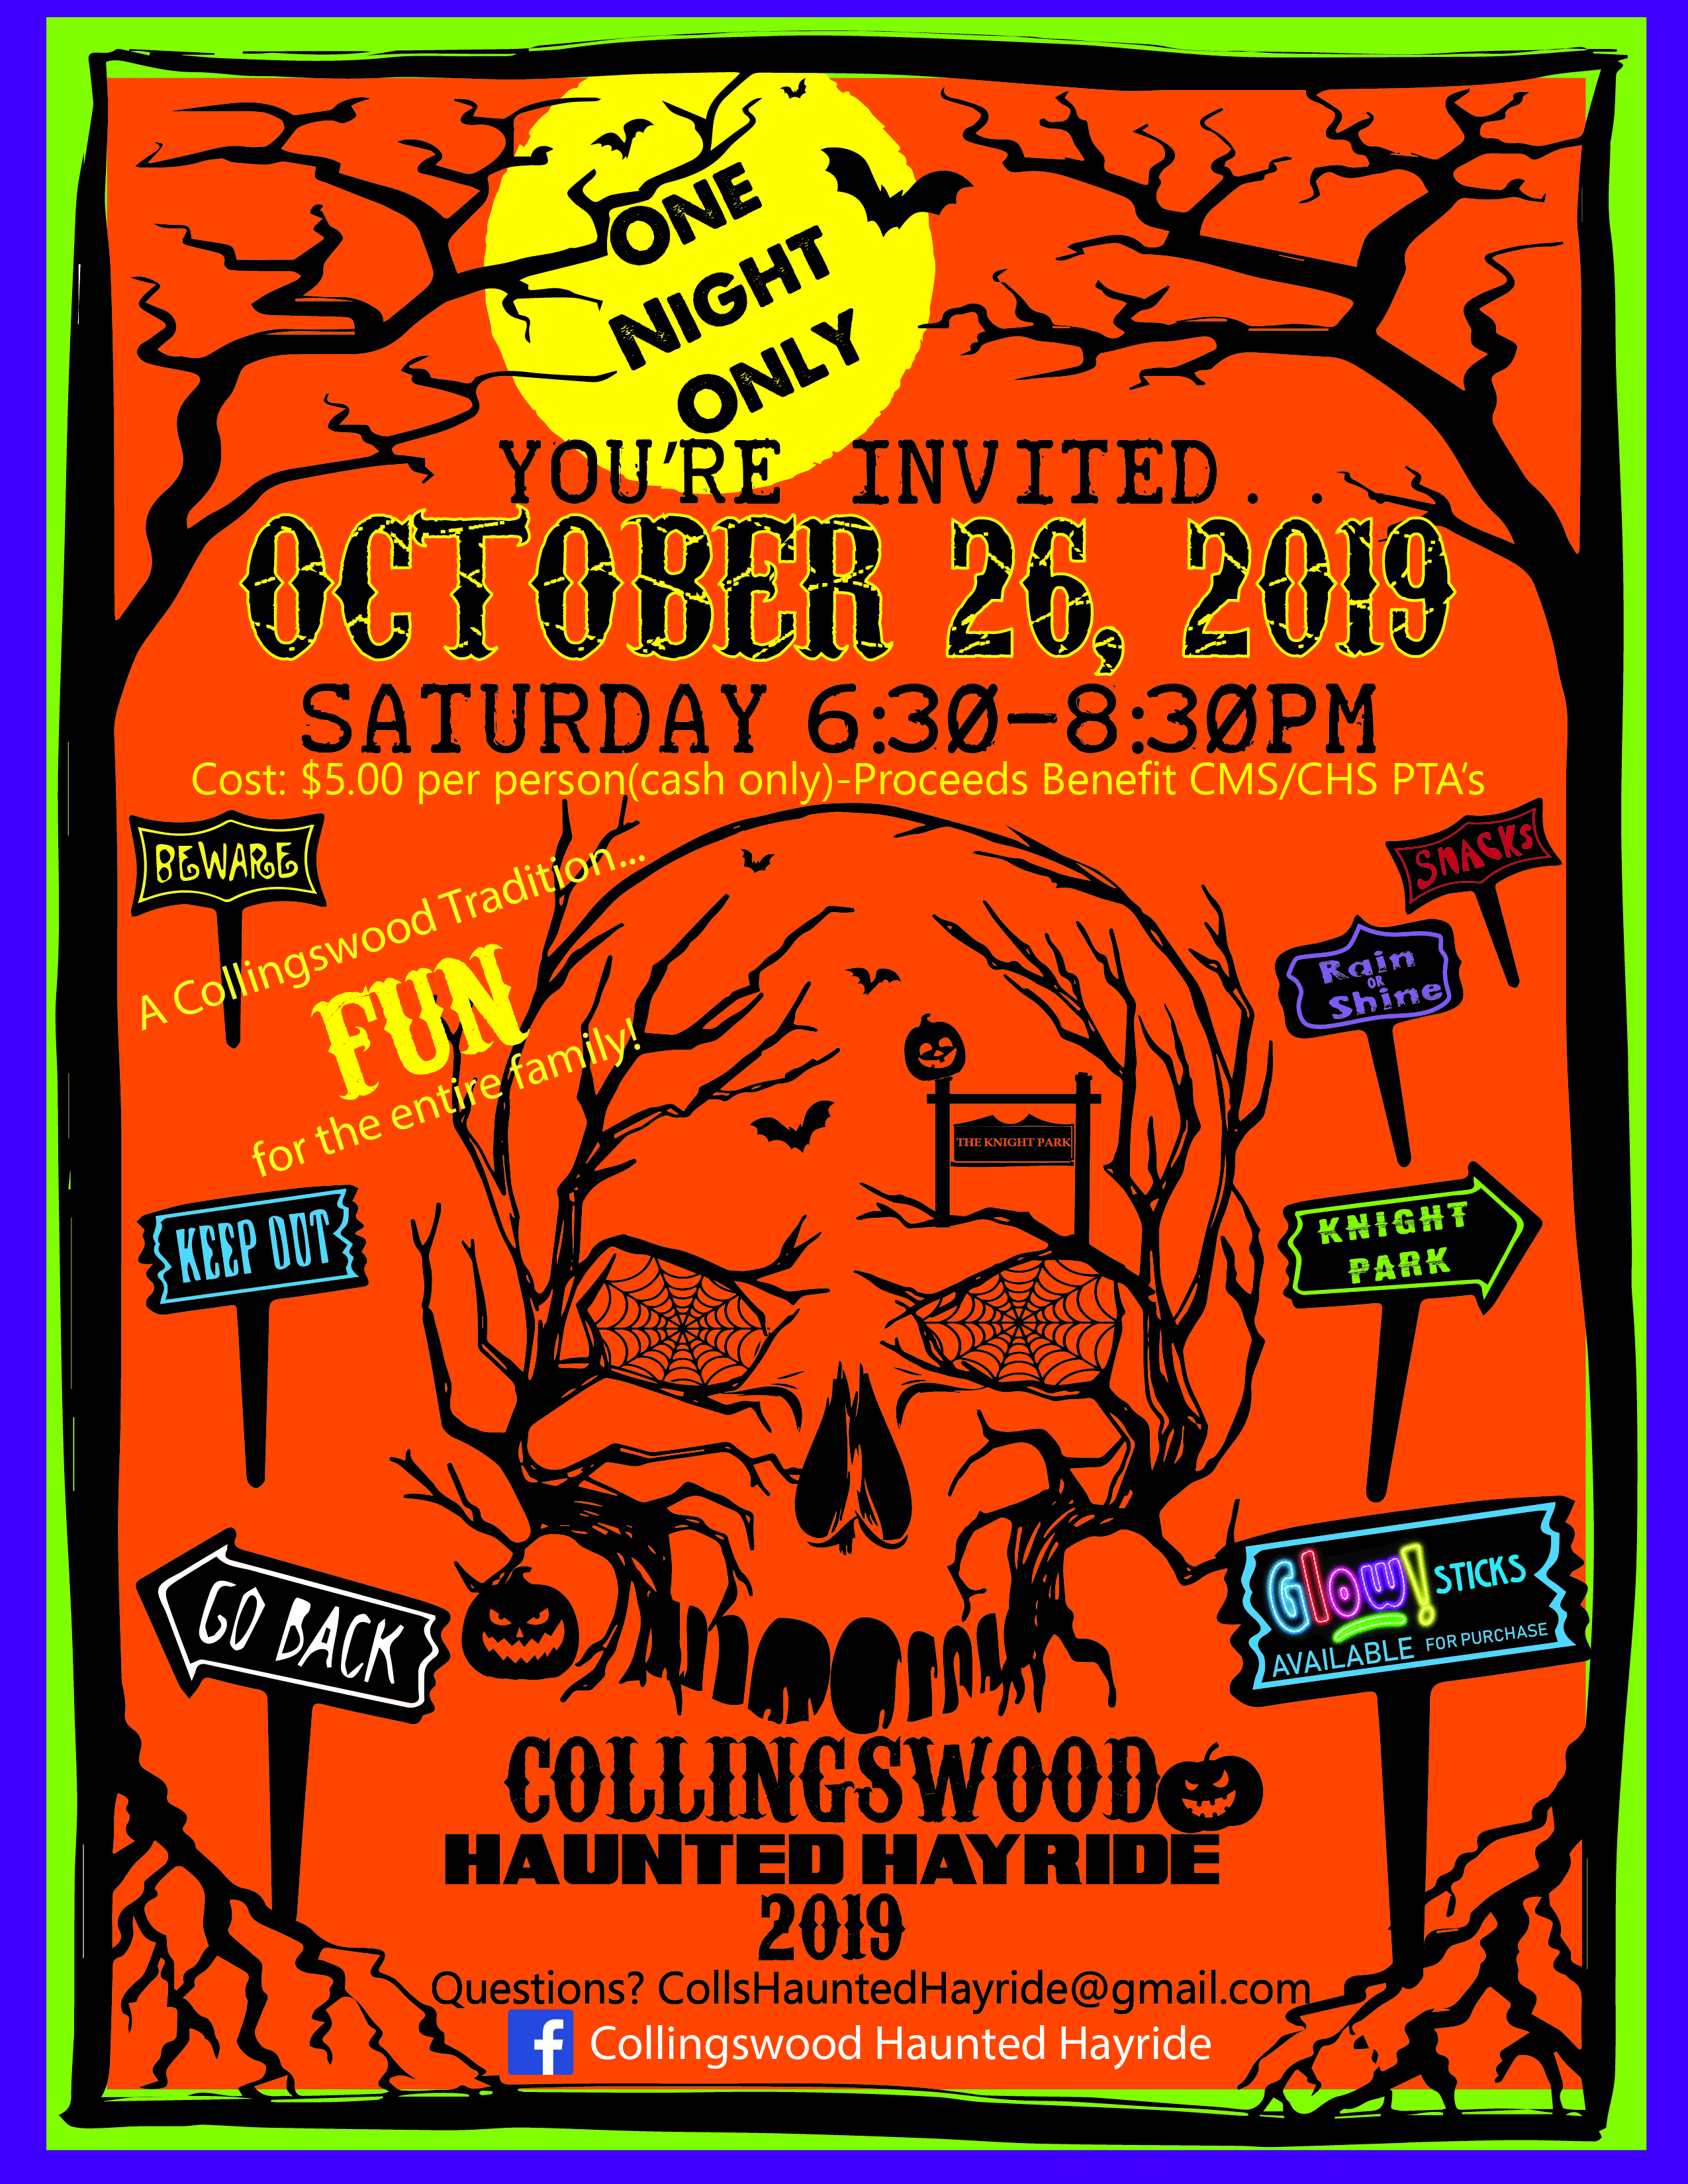 COLLINGSWOOD HAUNTED HAYRIDE  FYLER-FINAL-01 - 07-09-2019